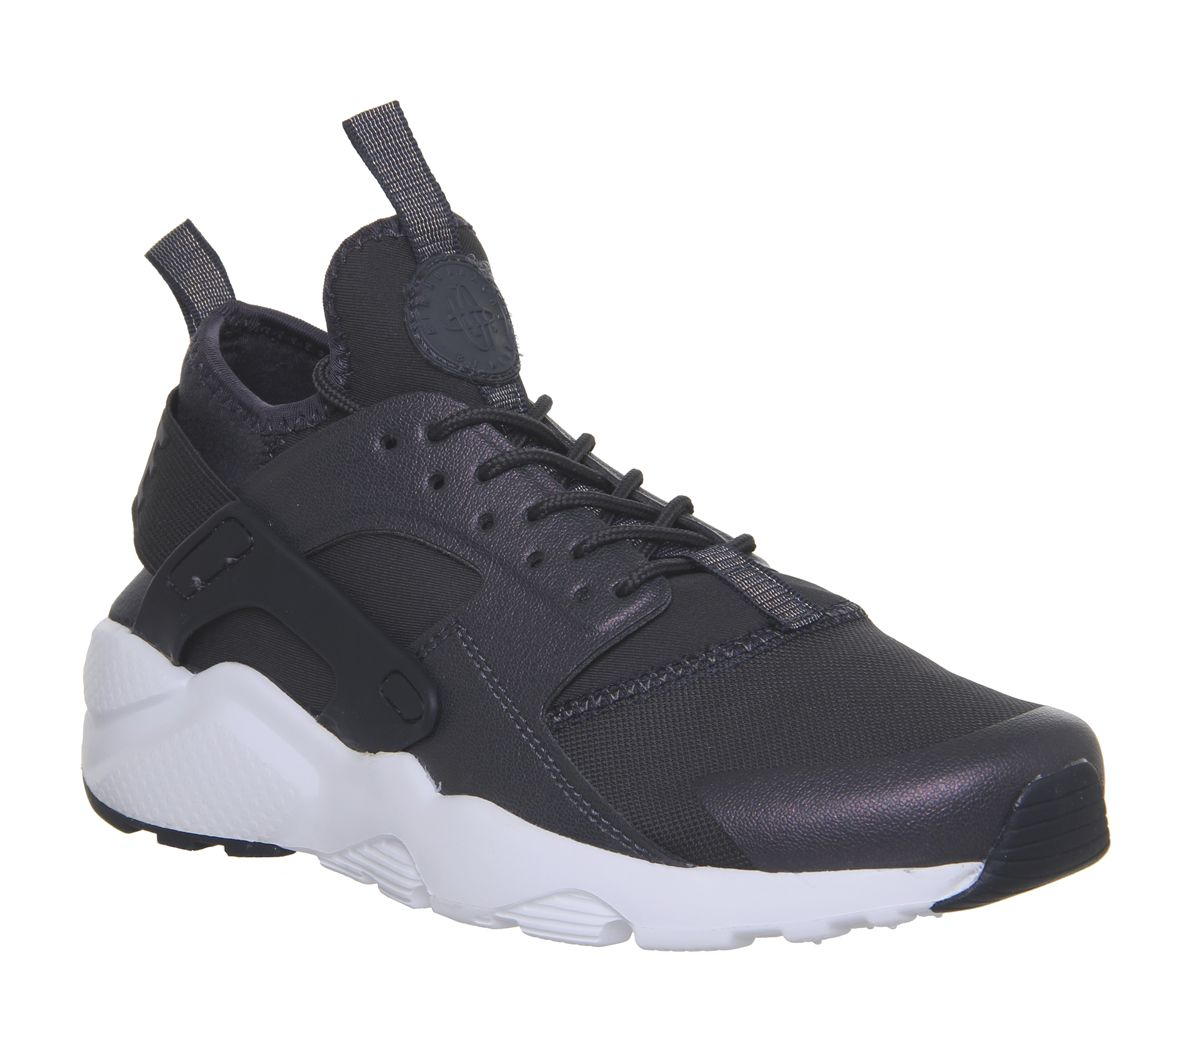 259e315665af Nike Huarache Ultra Gs Trainers Anthracite White - Hers trainers